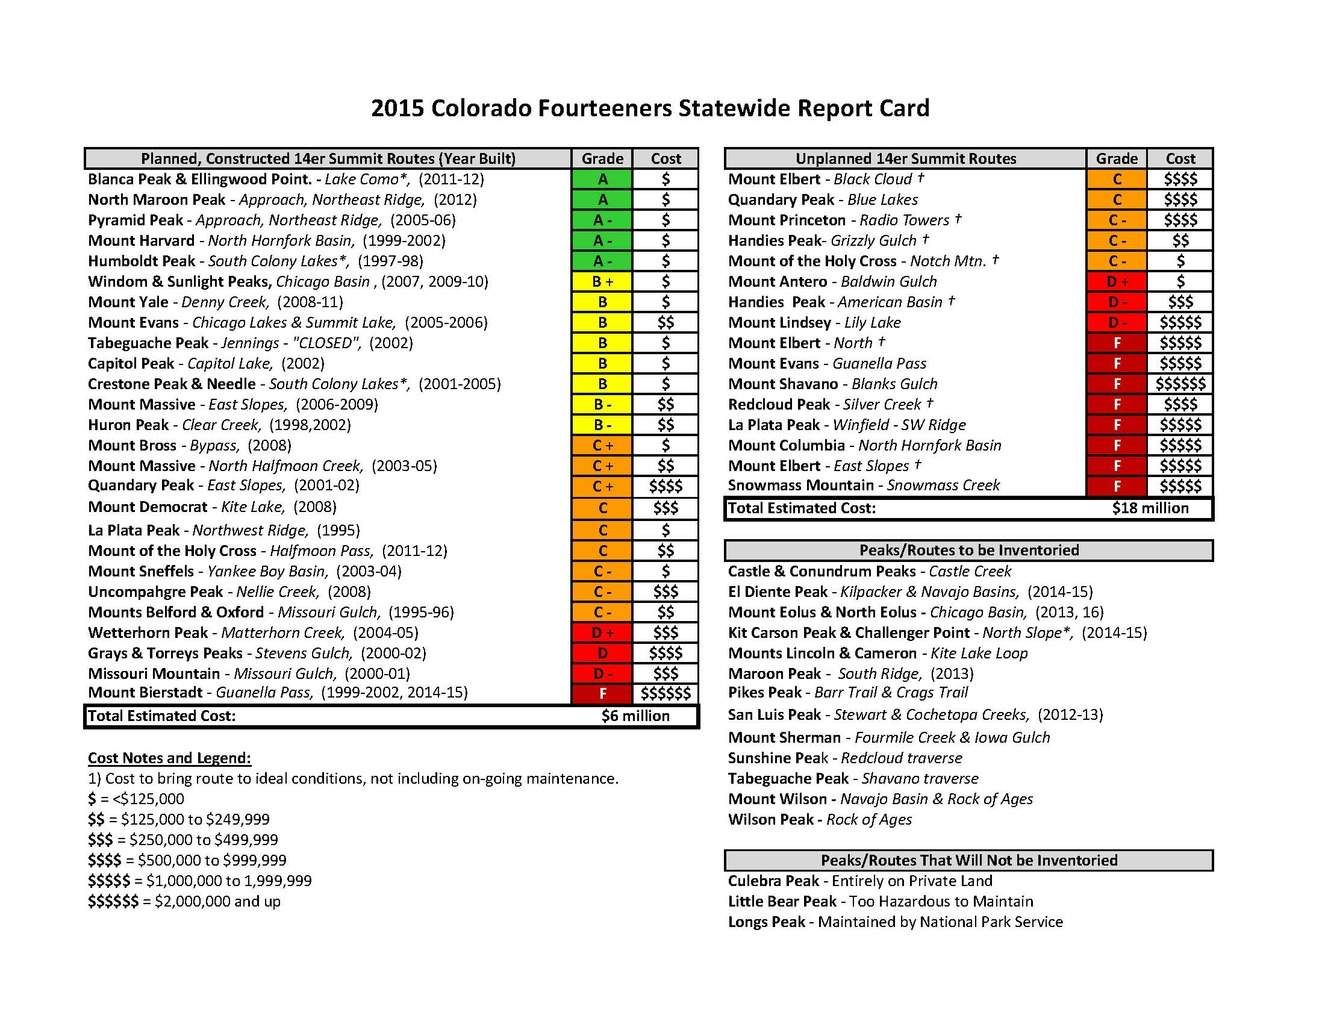 Colorado 14ers Statewide Report Card